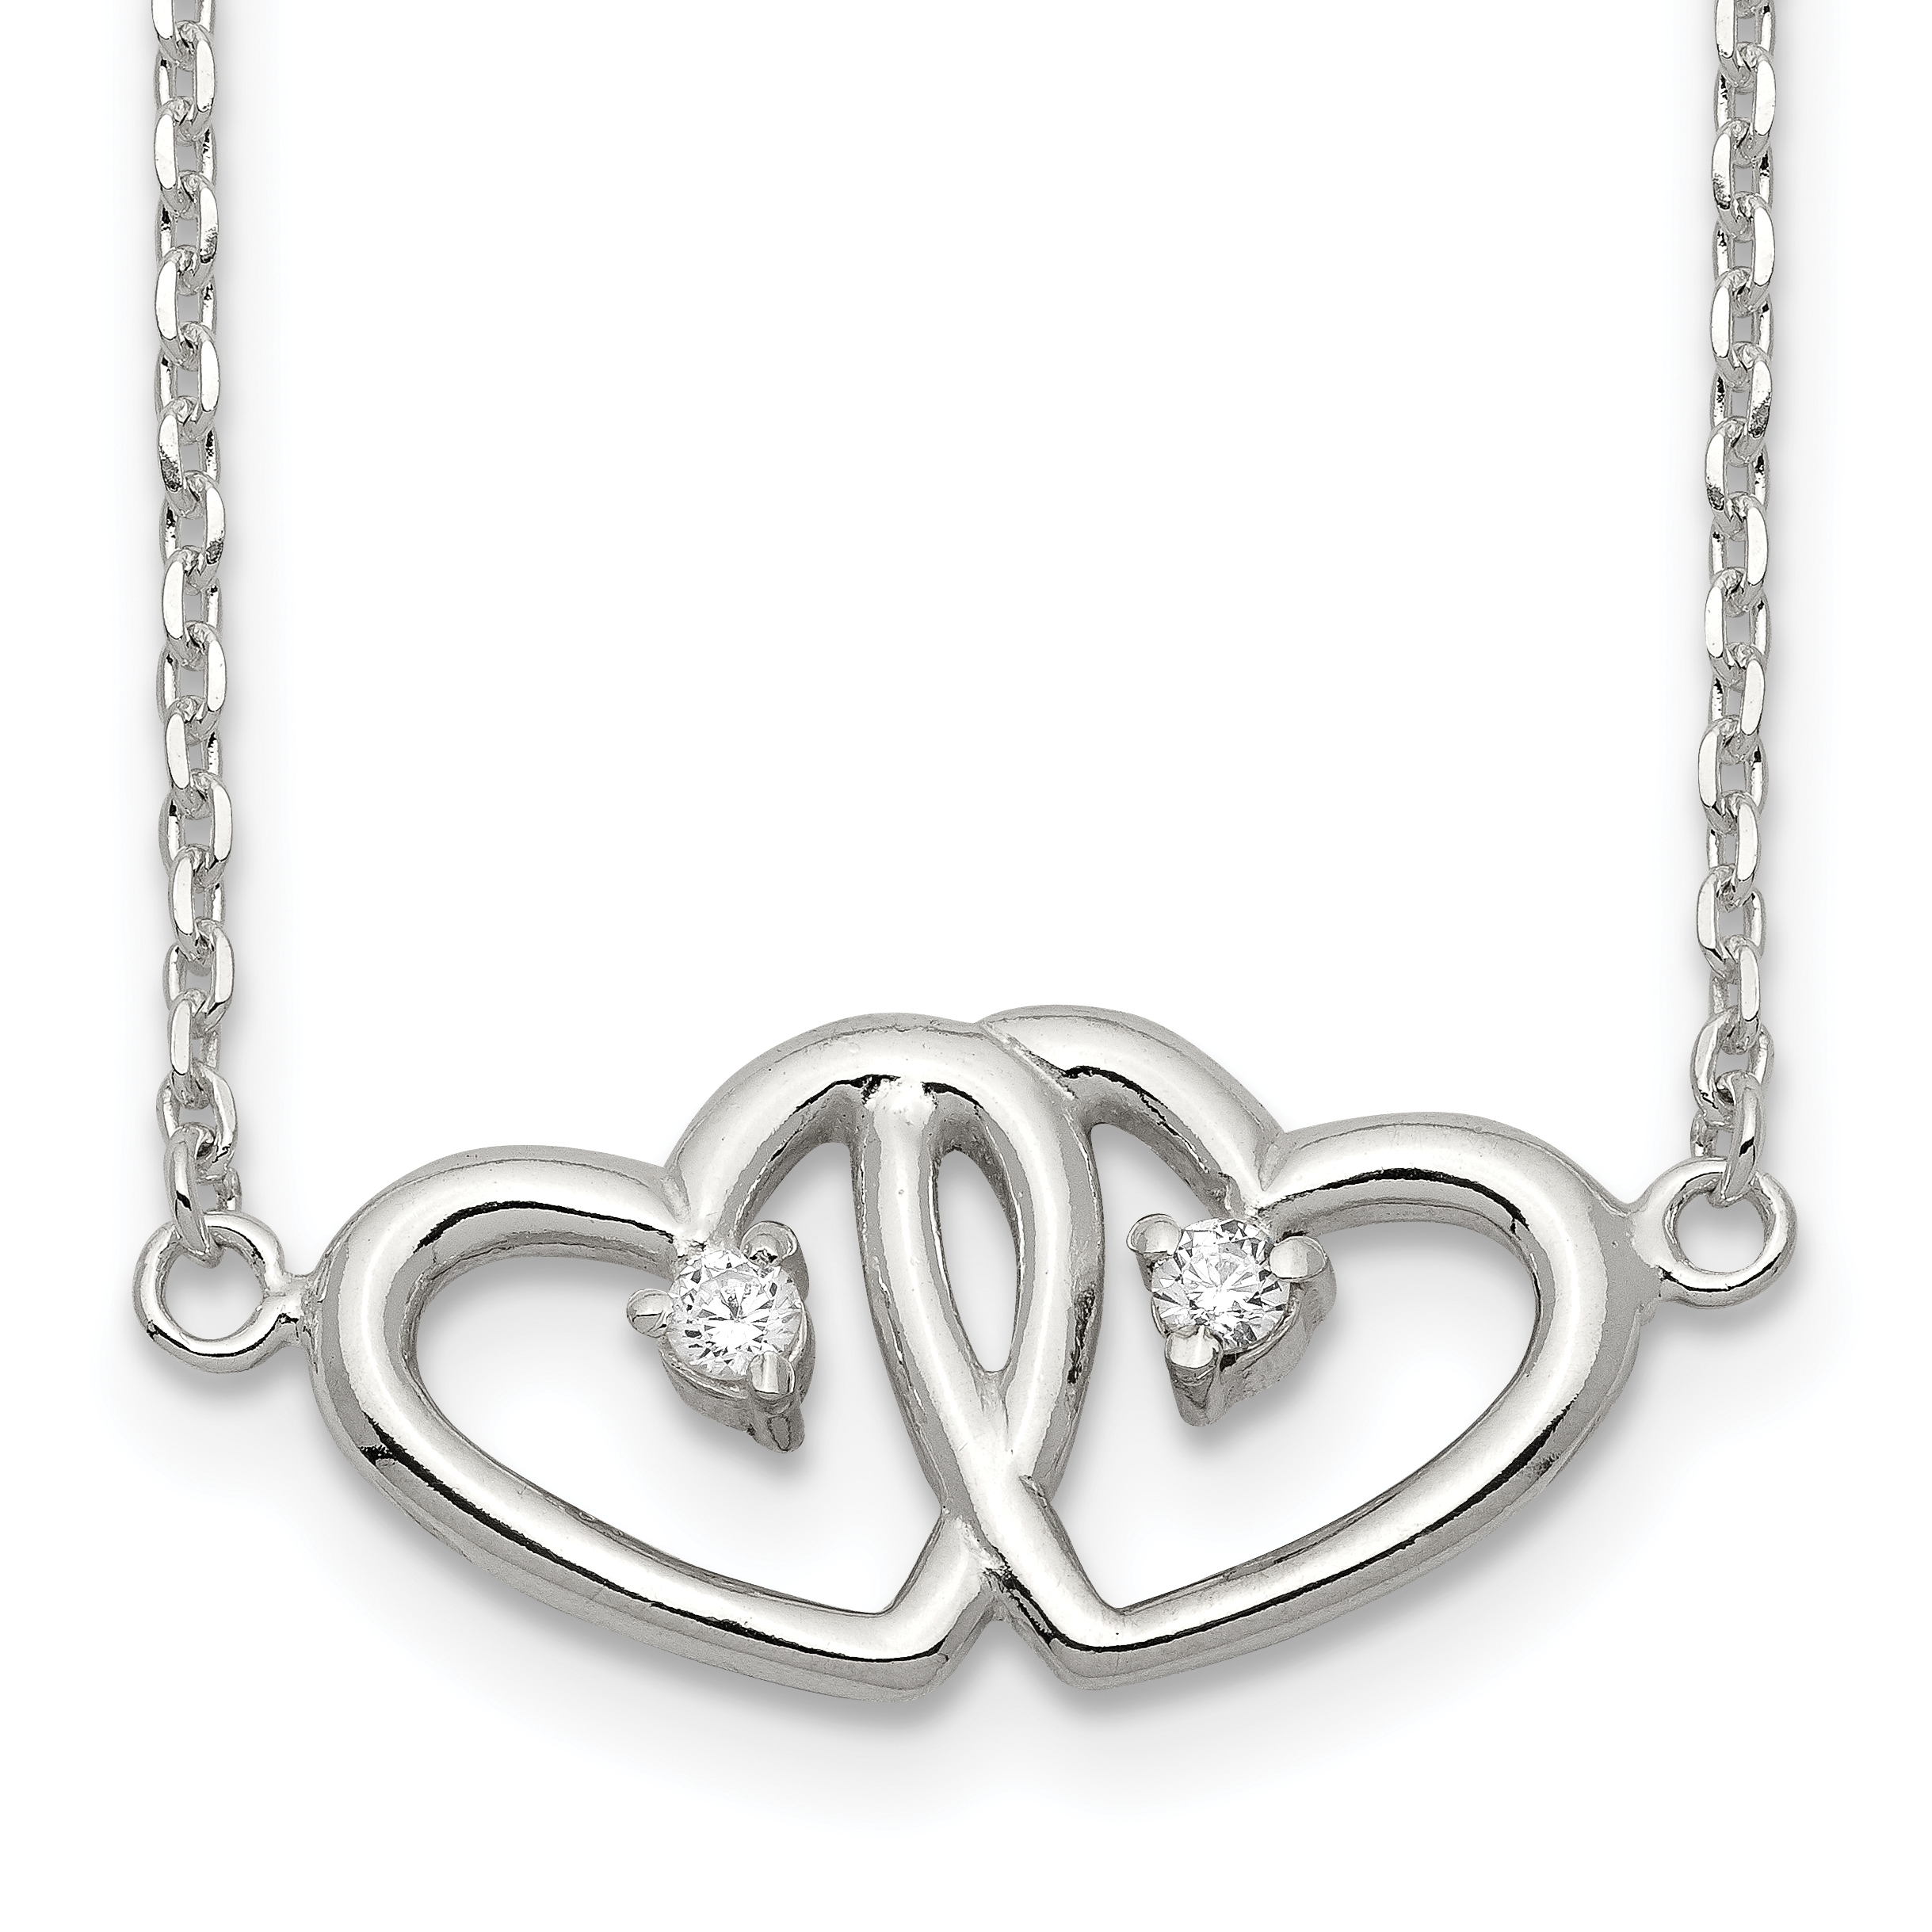 Sterling Silver Polished Two Hearts CZ Necklace | Weight: 2.94 grams, Length: 18mm, Width: mm